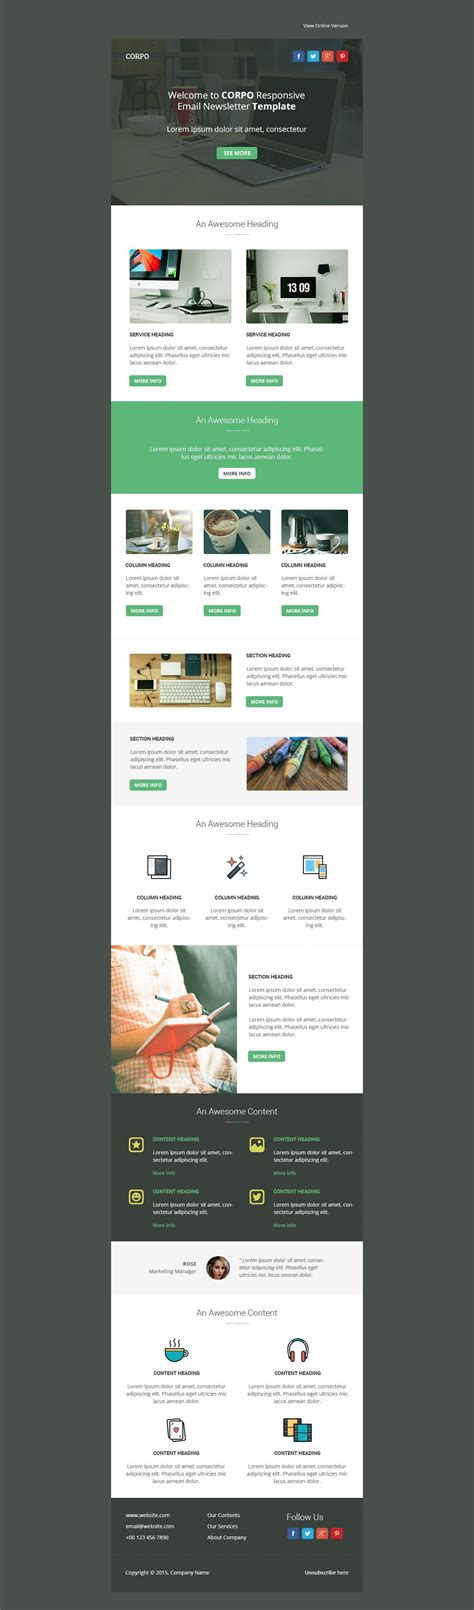 Free Html Email Template Generator Choice Image Professional Report Template Word Email Template Generator